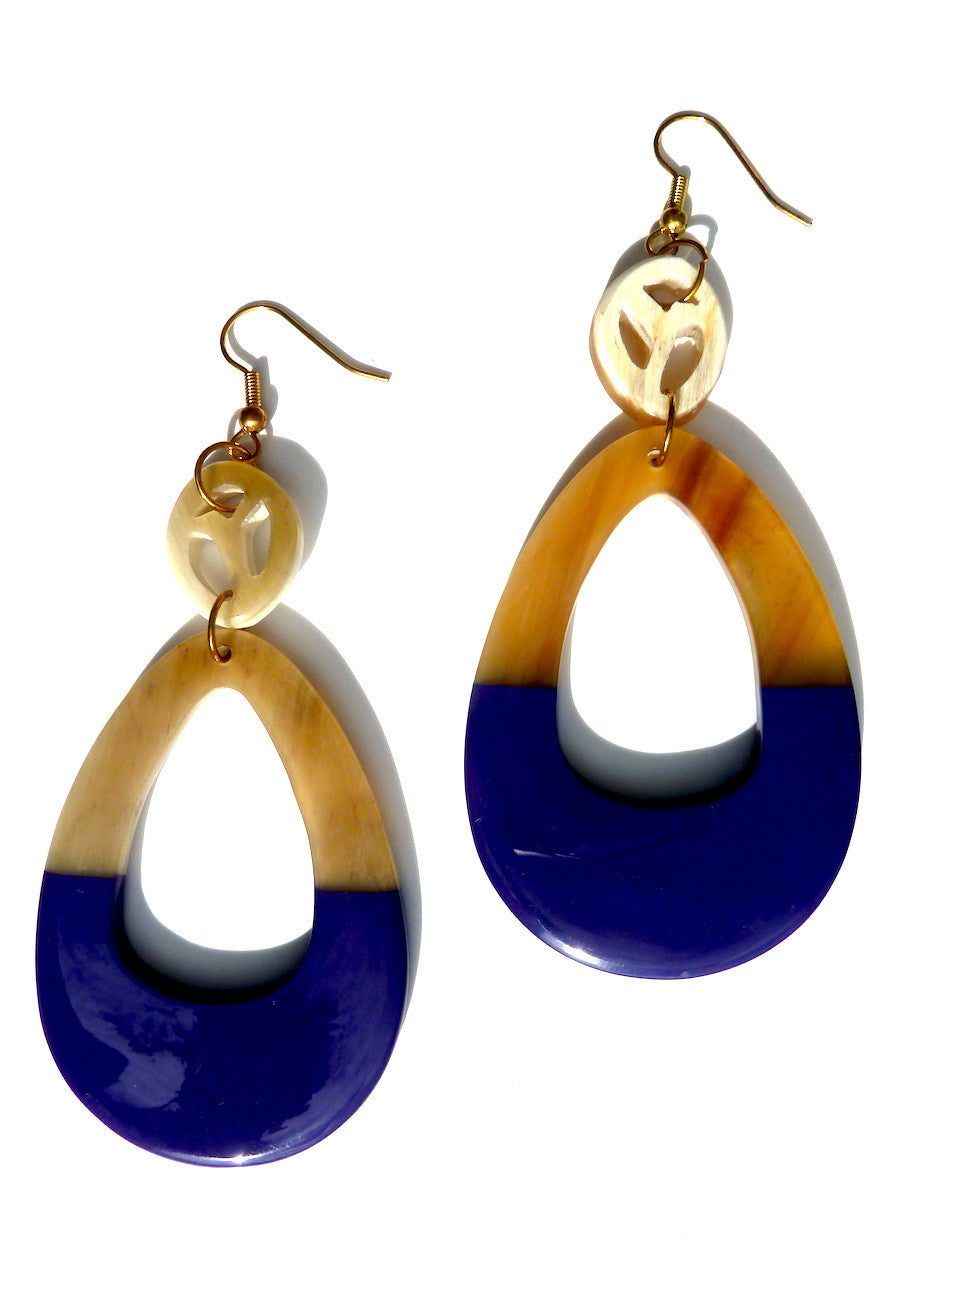 HORN EARRINGS TEARDROP AND LACQUER